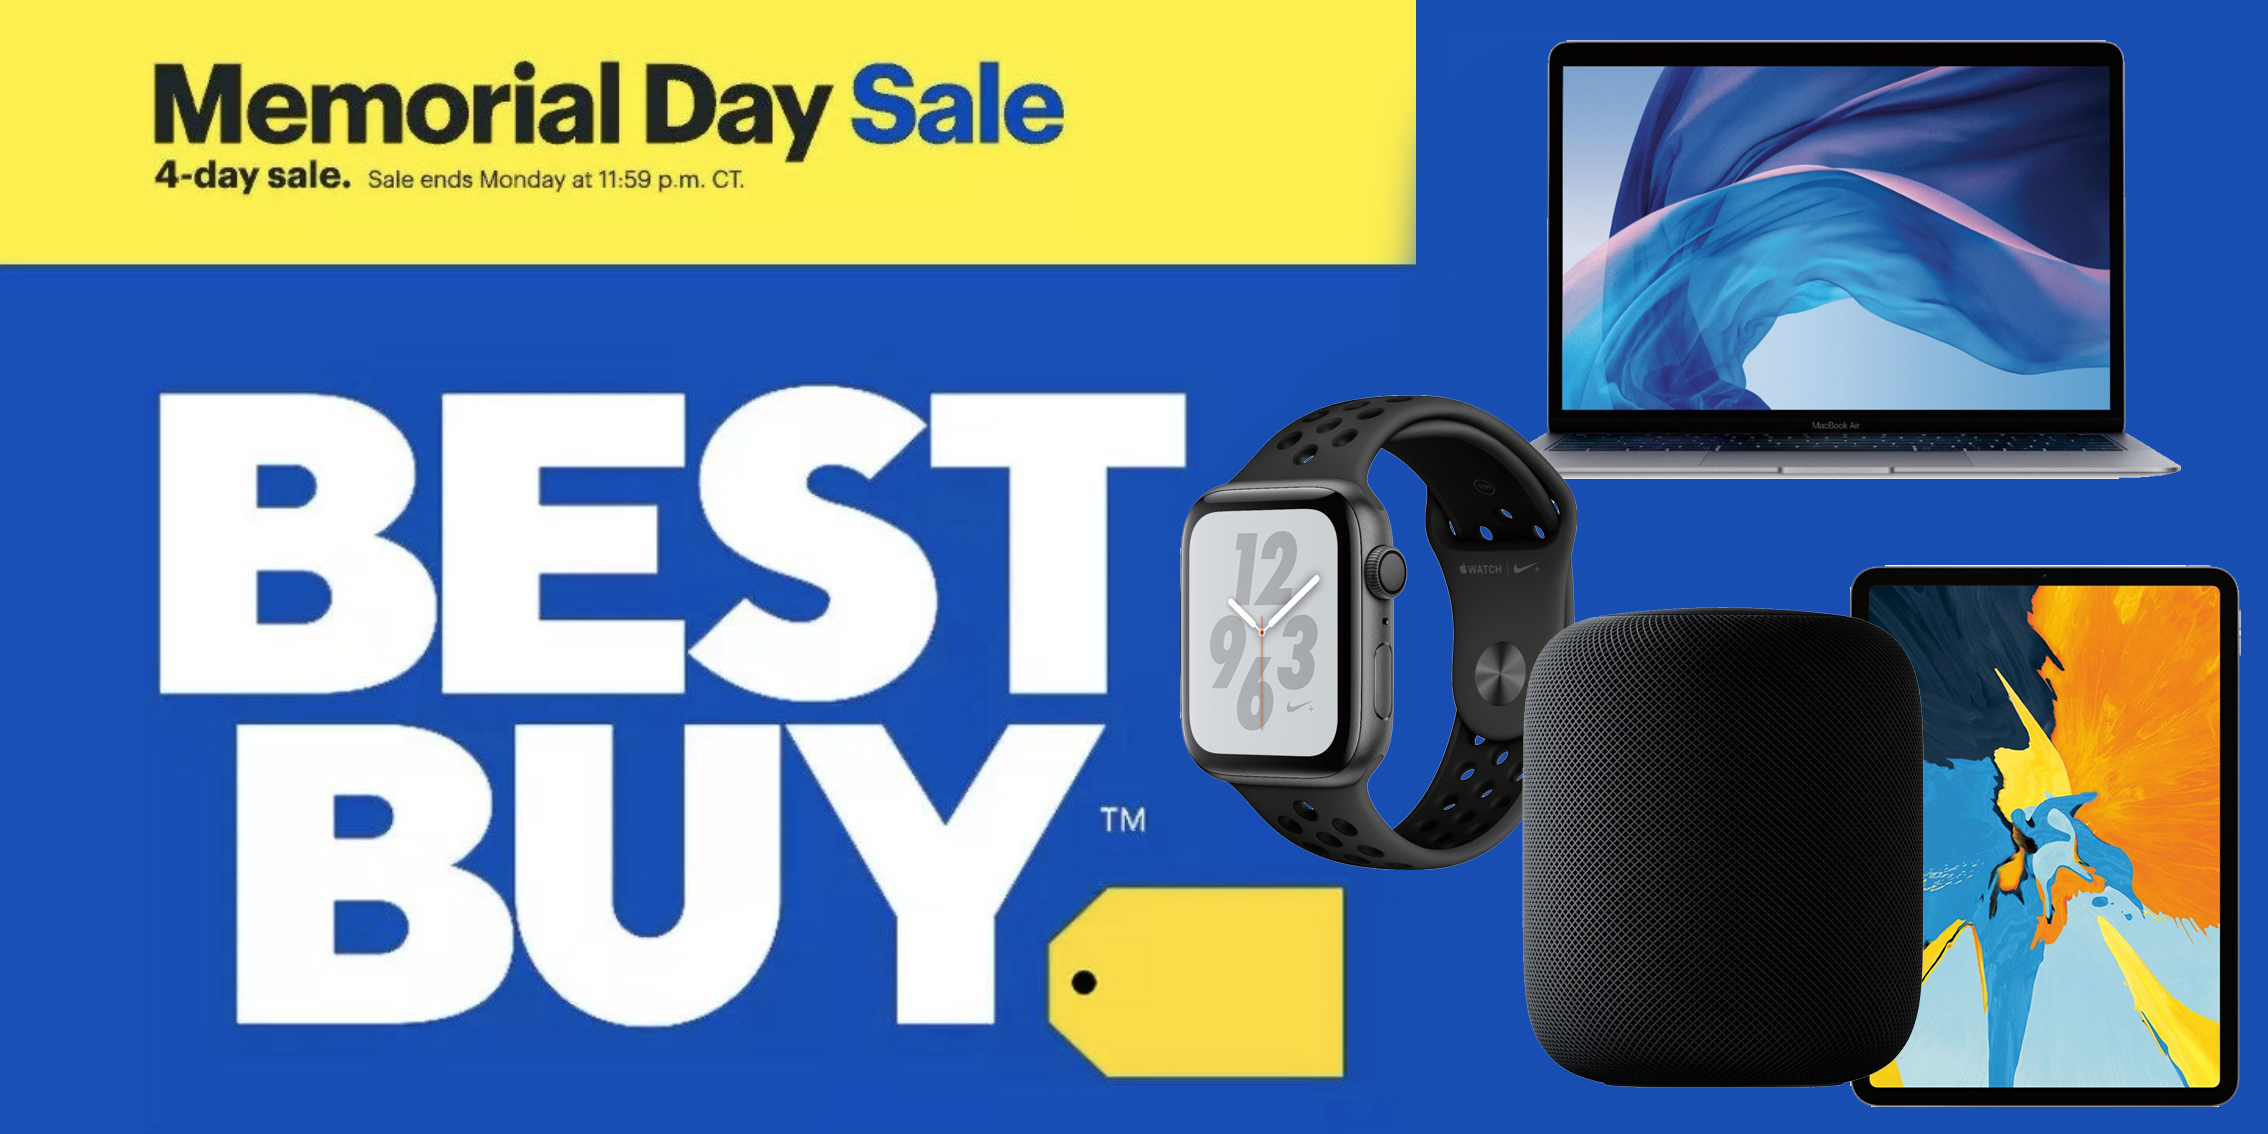 Best Buy Memorial Day Sale has deals on nearly every Apple product: MacBooks, iPads, Apple Watch, more